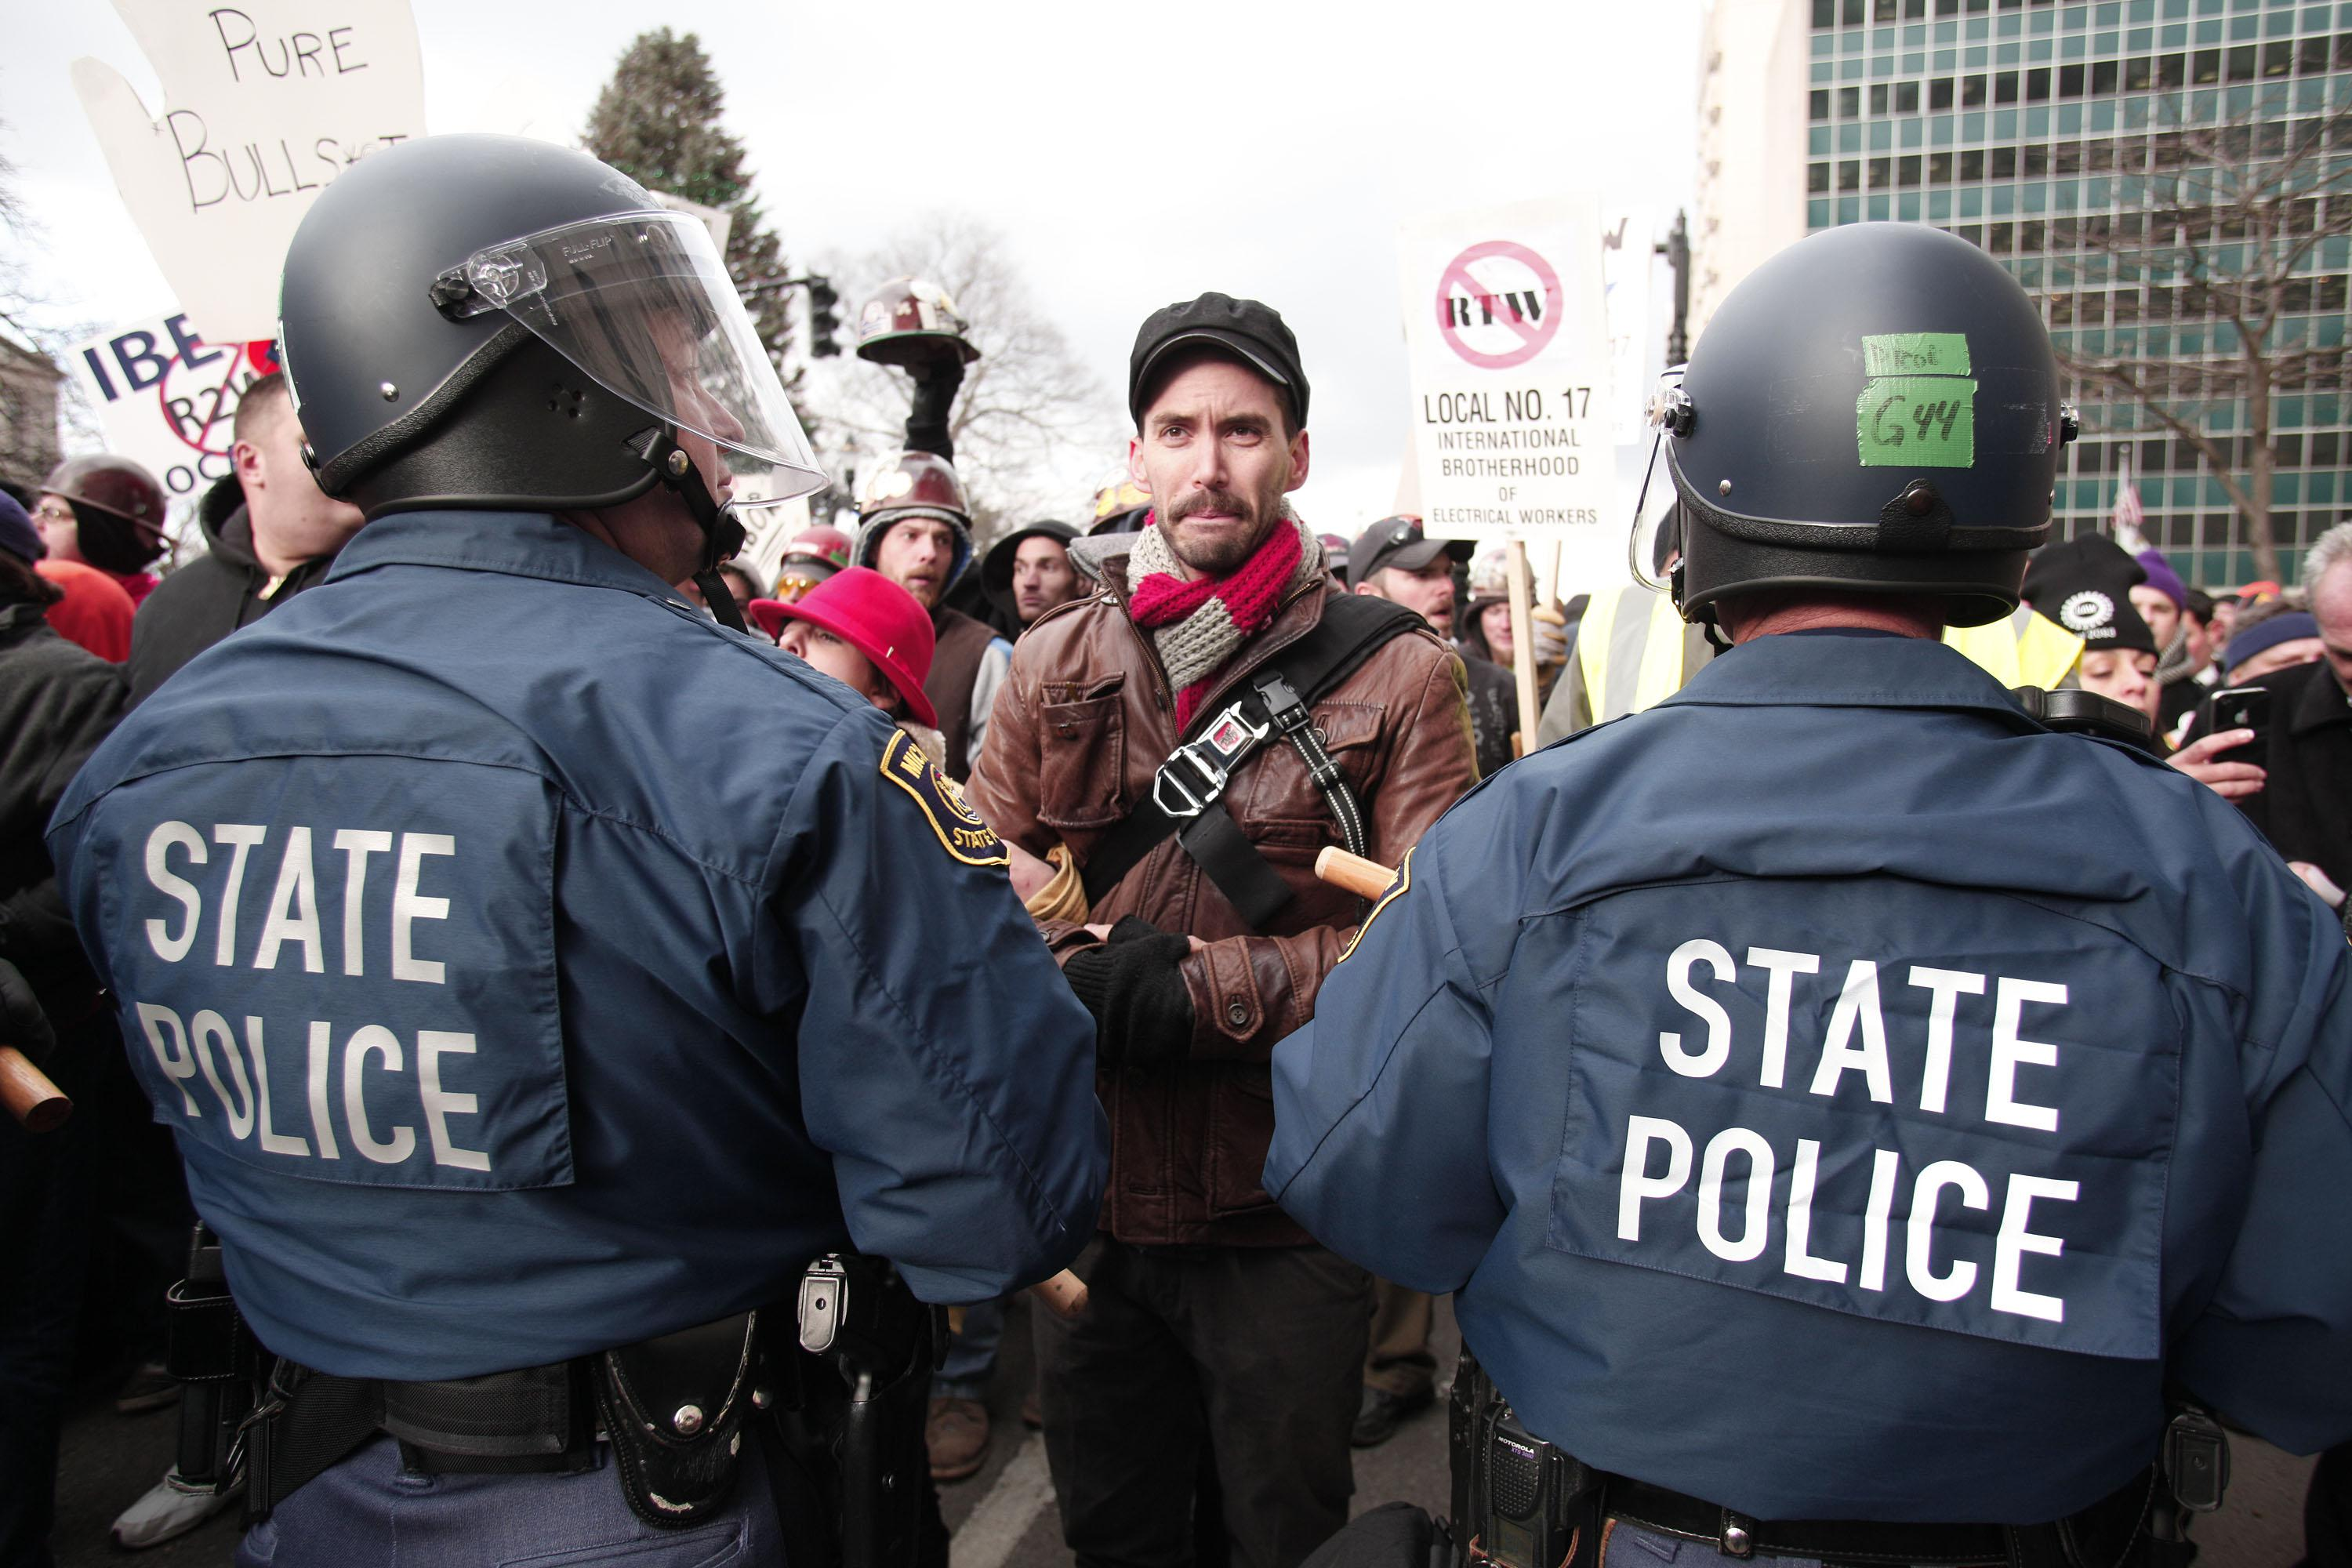 Michigan State Police in riot gear stand with batons while protestors block a street during a rally at the Michigan State Capitol to protest a vote on Right-to-Work.